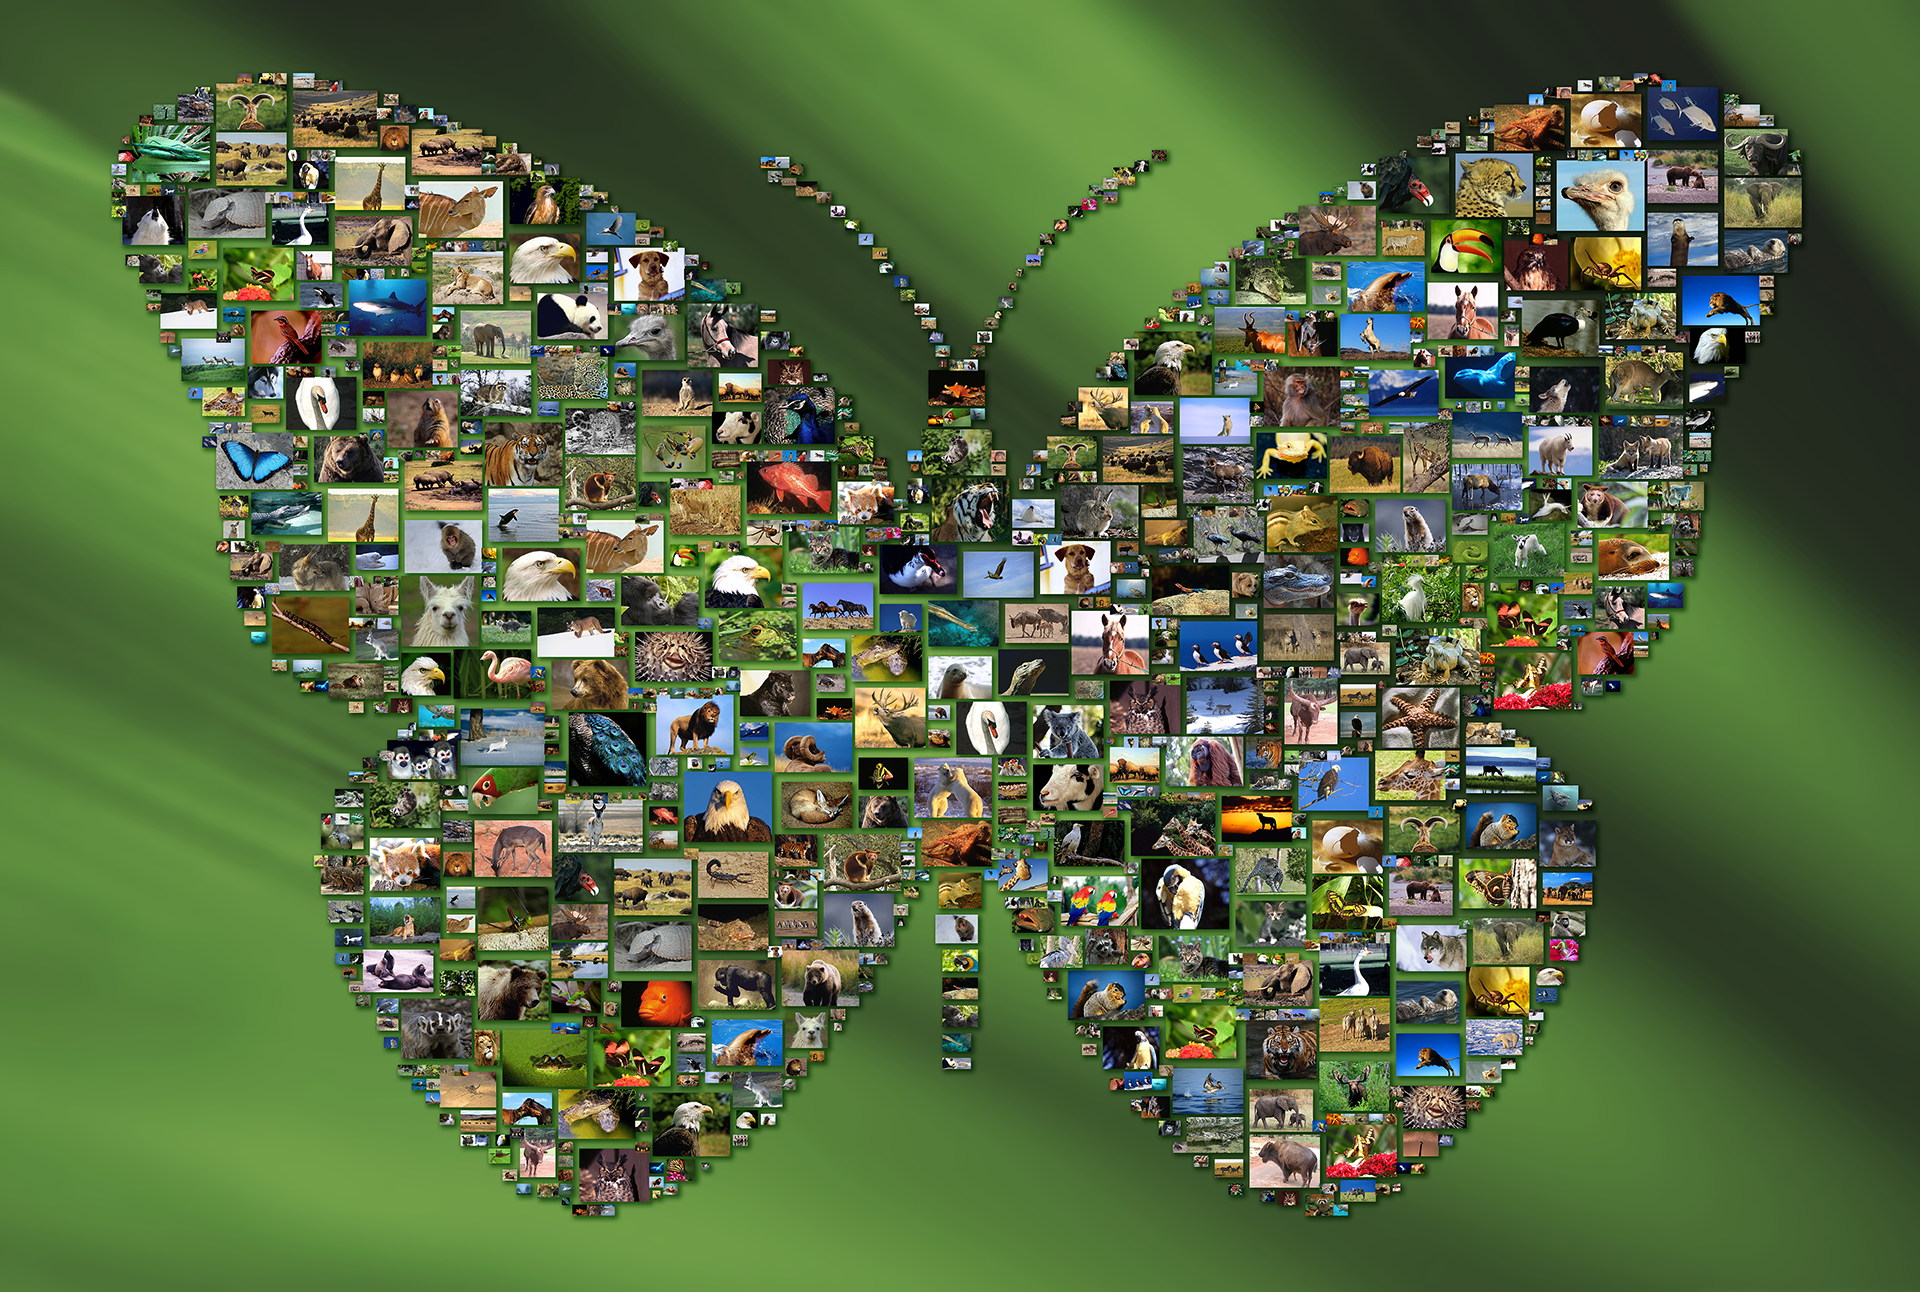 photo mosaic created using 386 wildlife photos on a custom backdrop